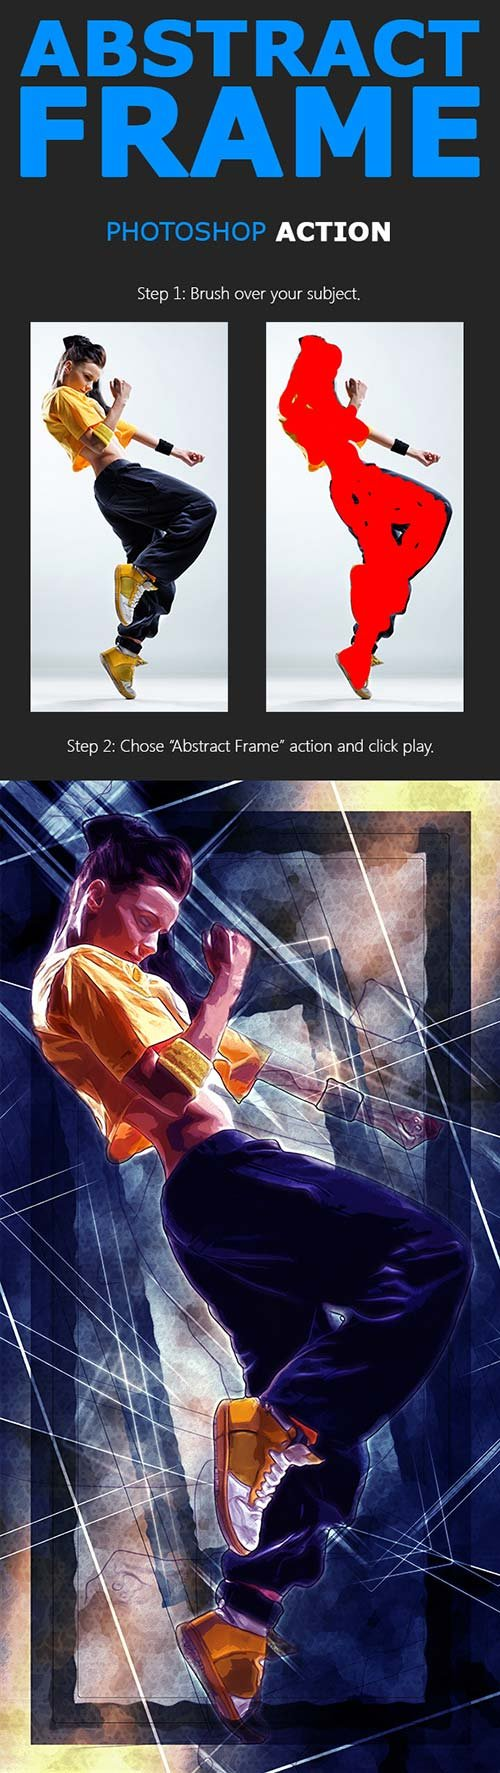 GraphicRiver Abstract Frame Photoshop Action